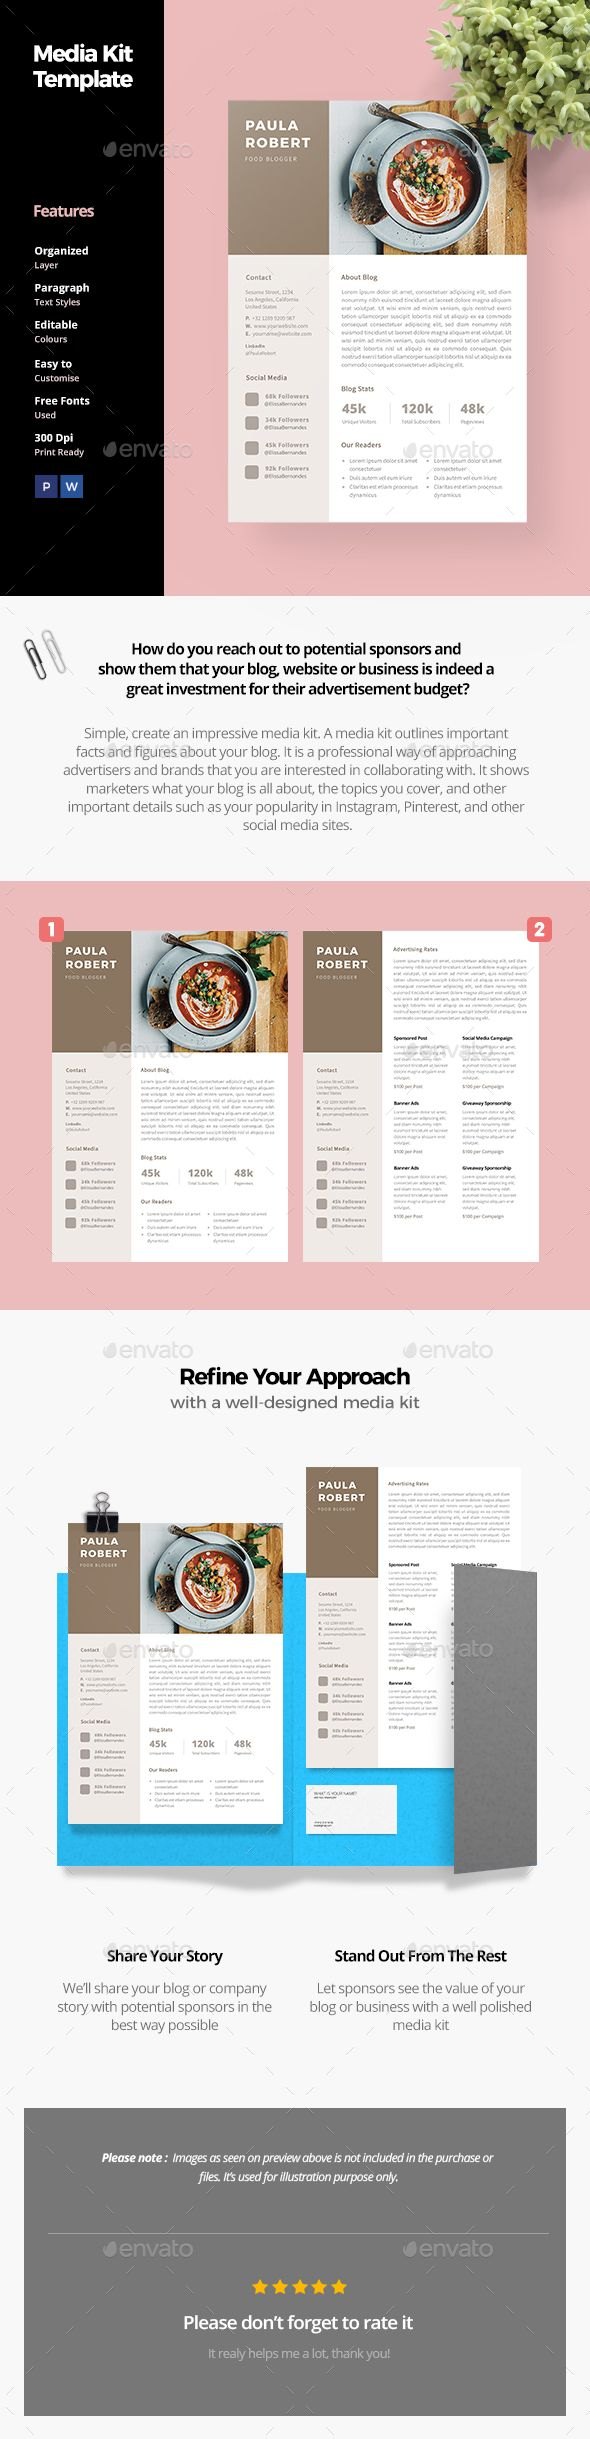 how to create a proposal template in word%0A Media Kit Template